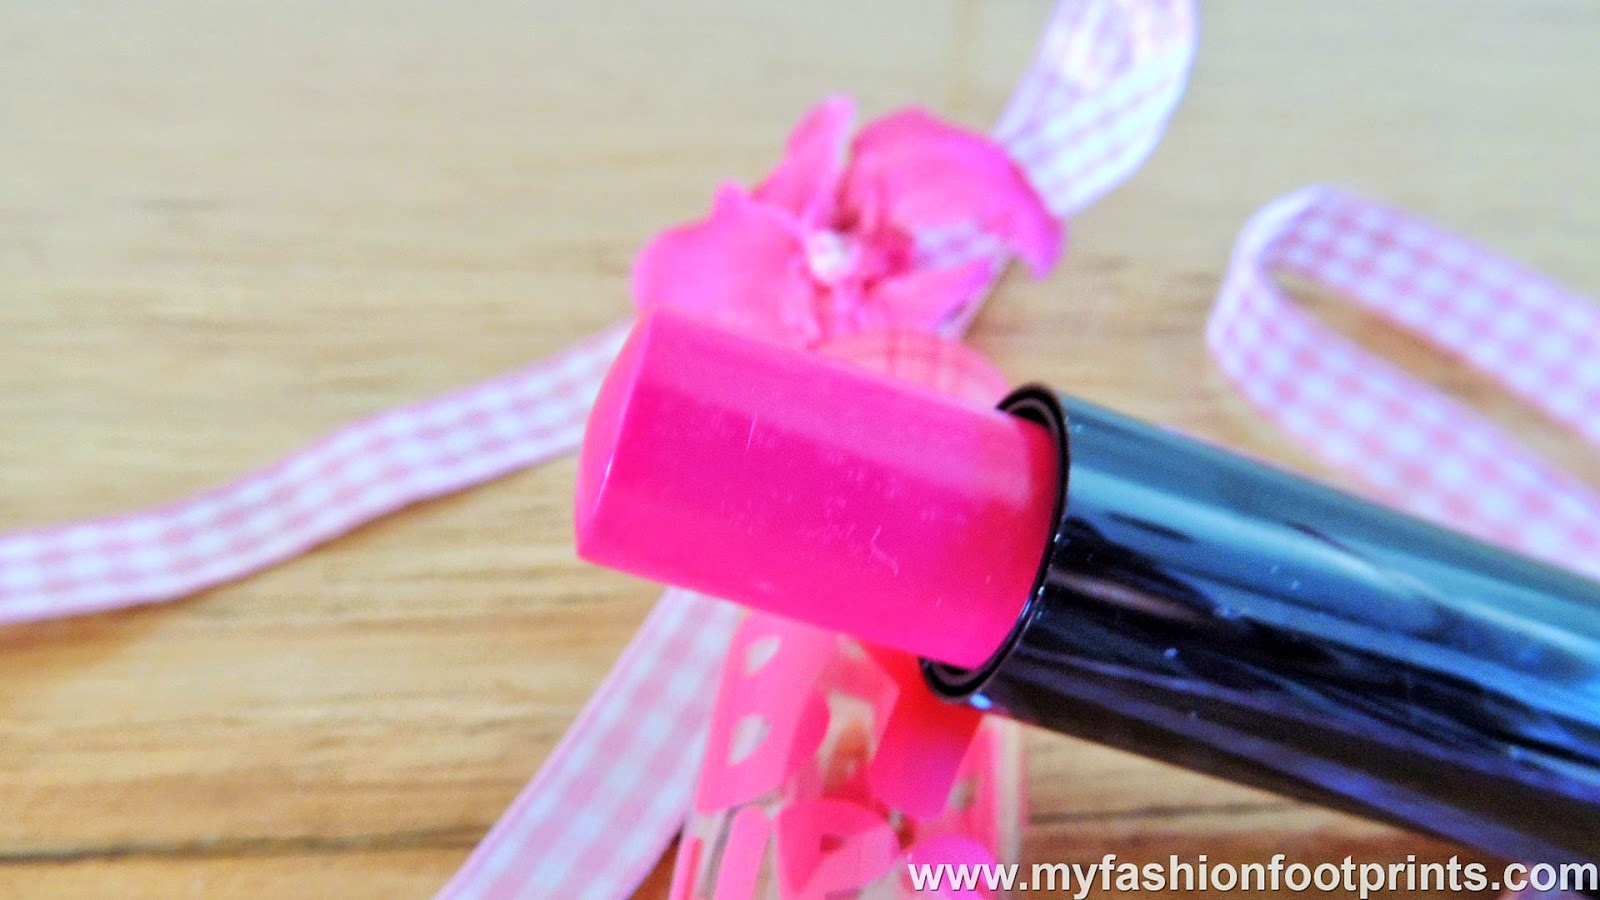 Maybelline Baby Lips Electro Pop Lip Balm - Pink Shock review